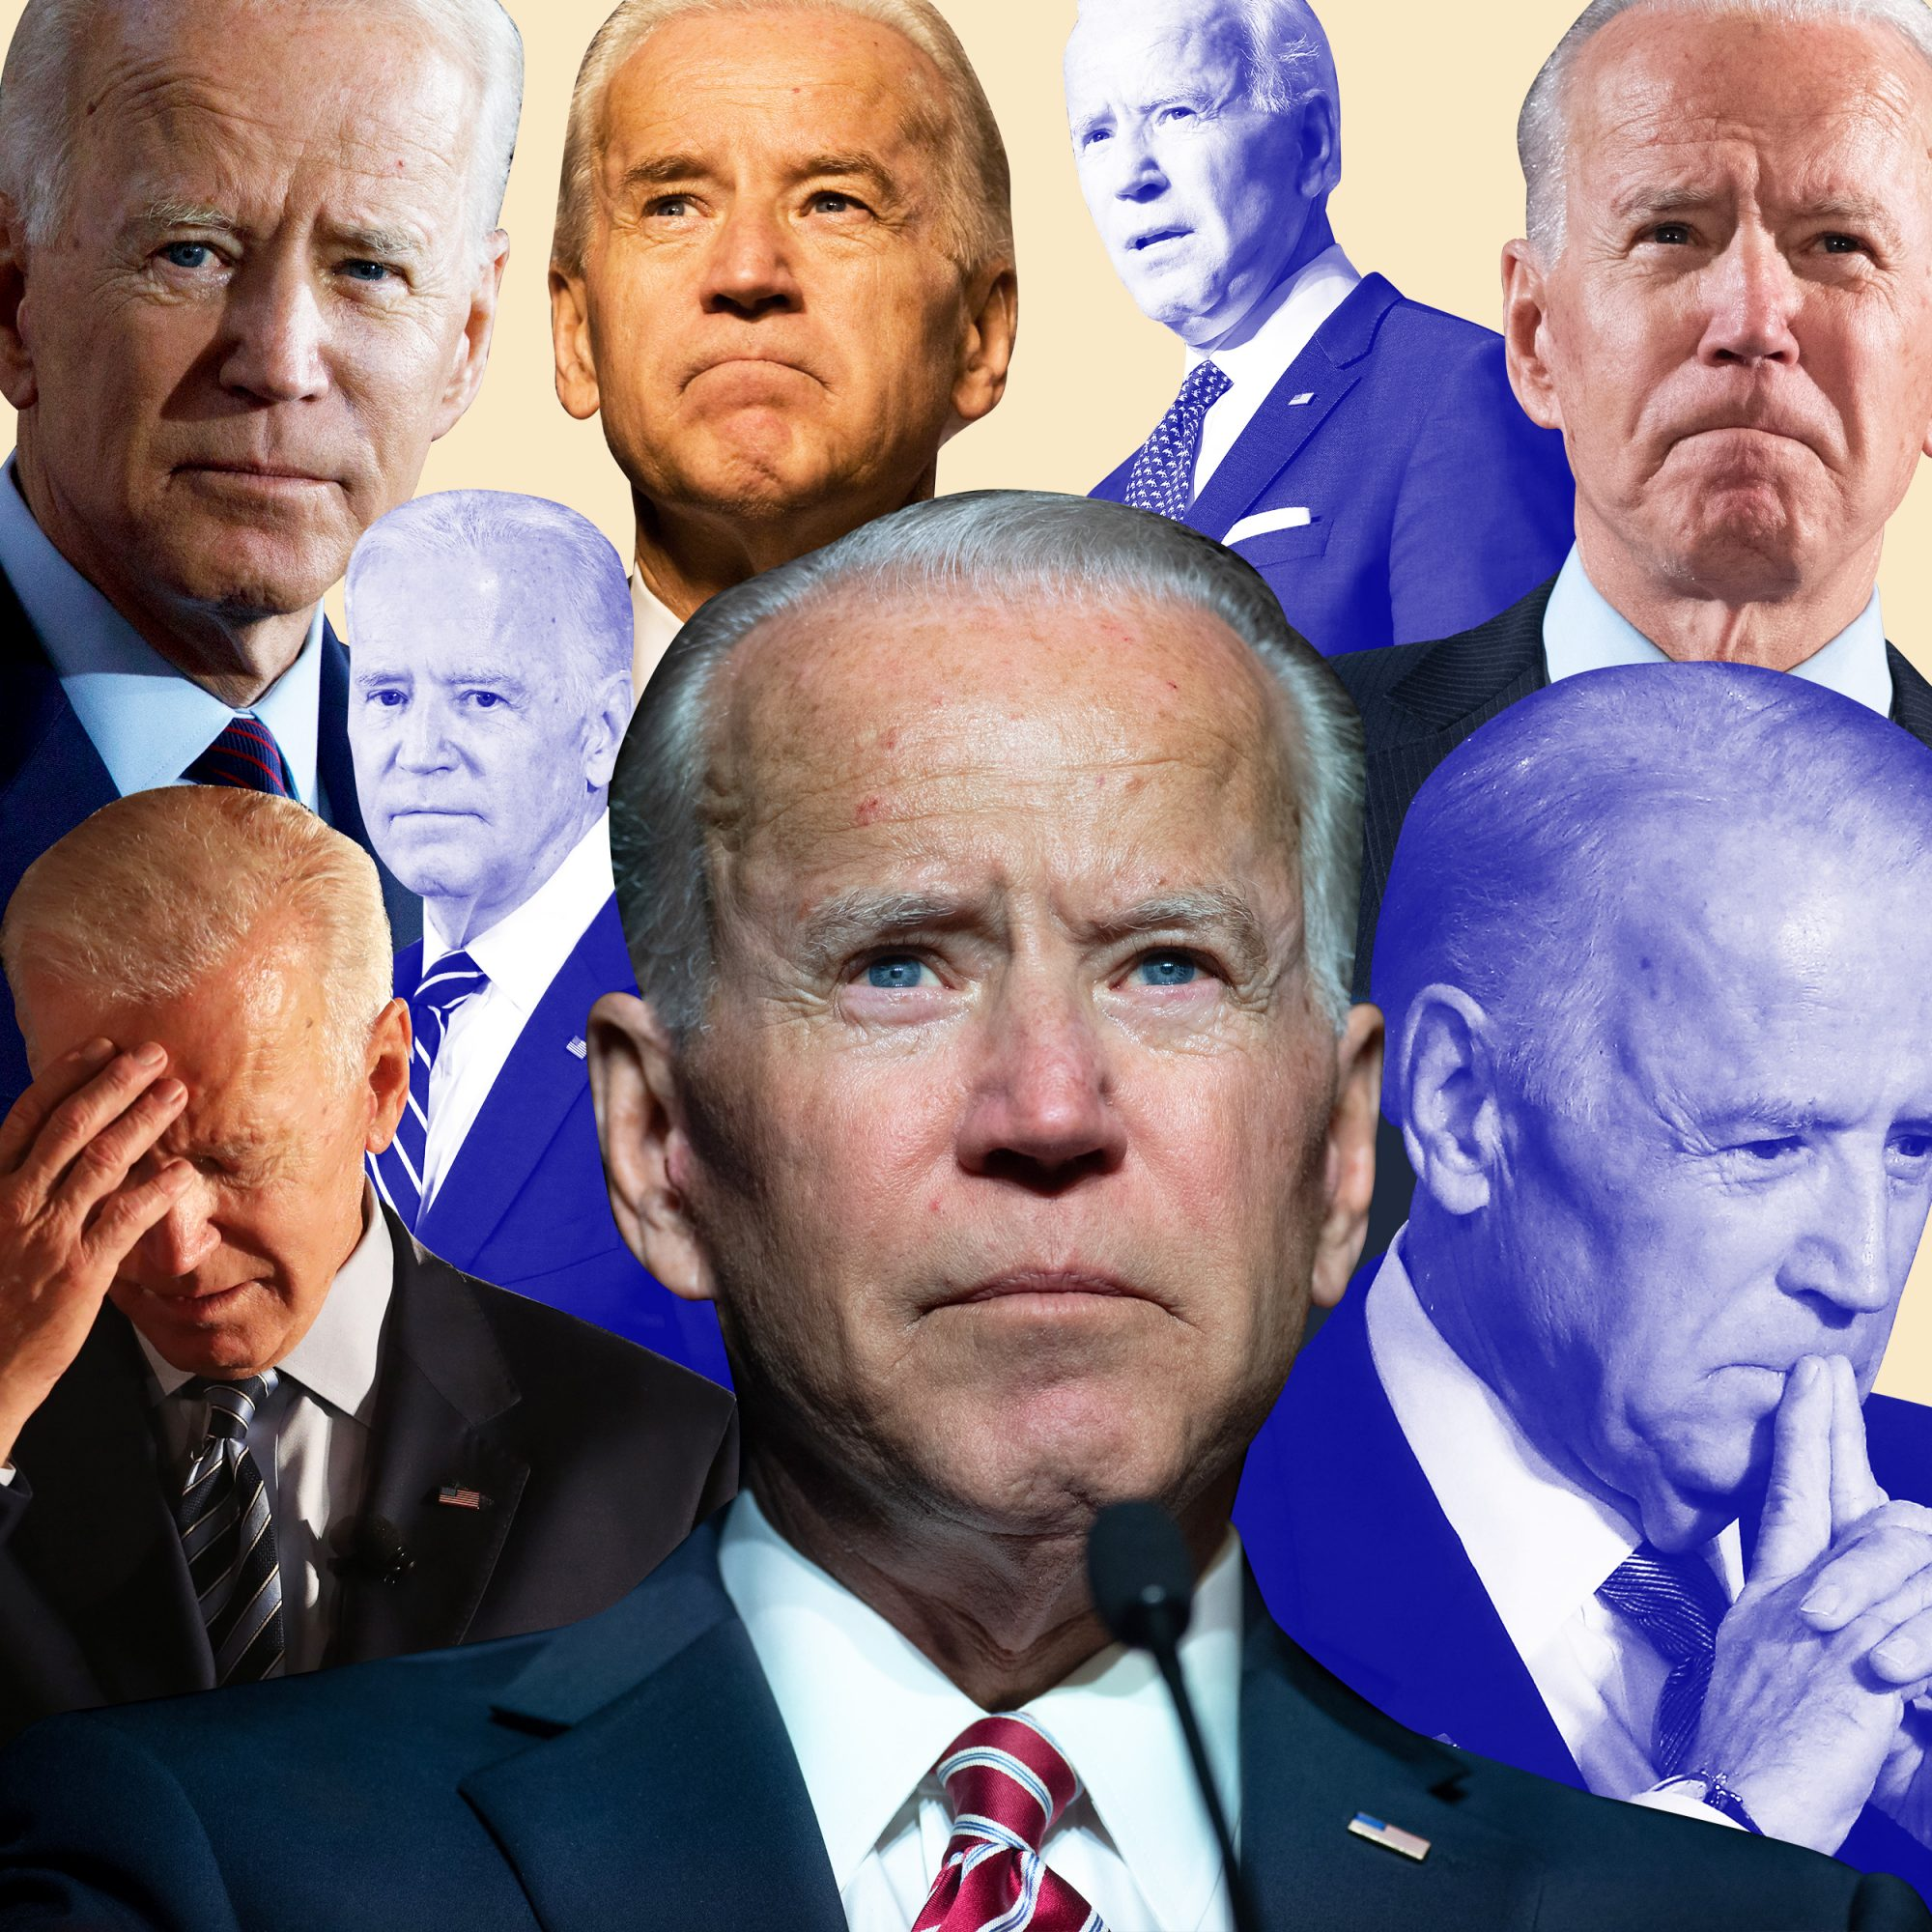 FEATURE: Women Feel Conflicted About Voting for Joe